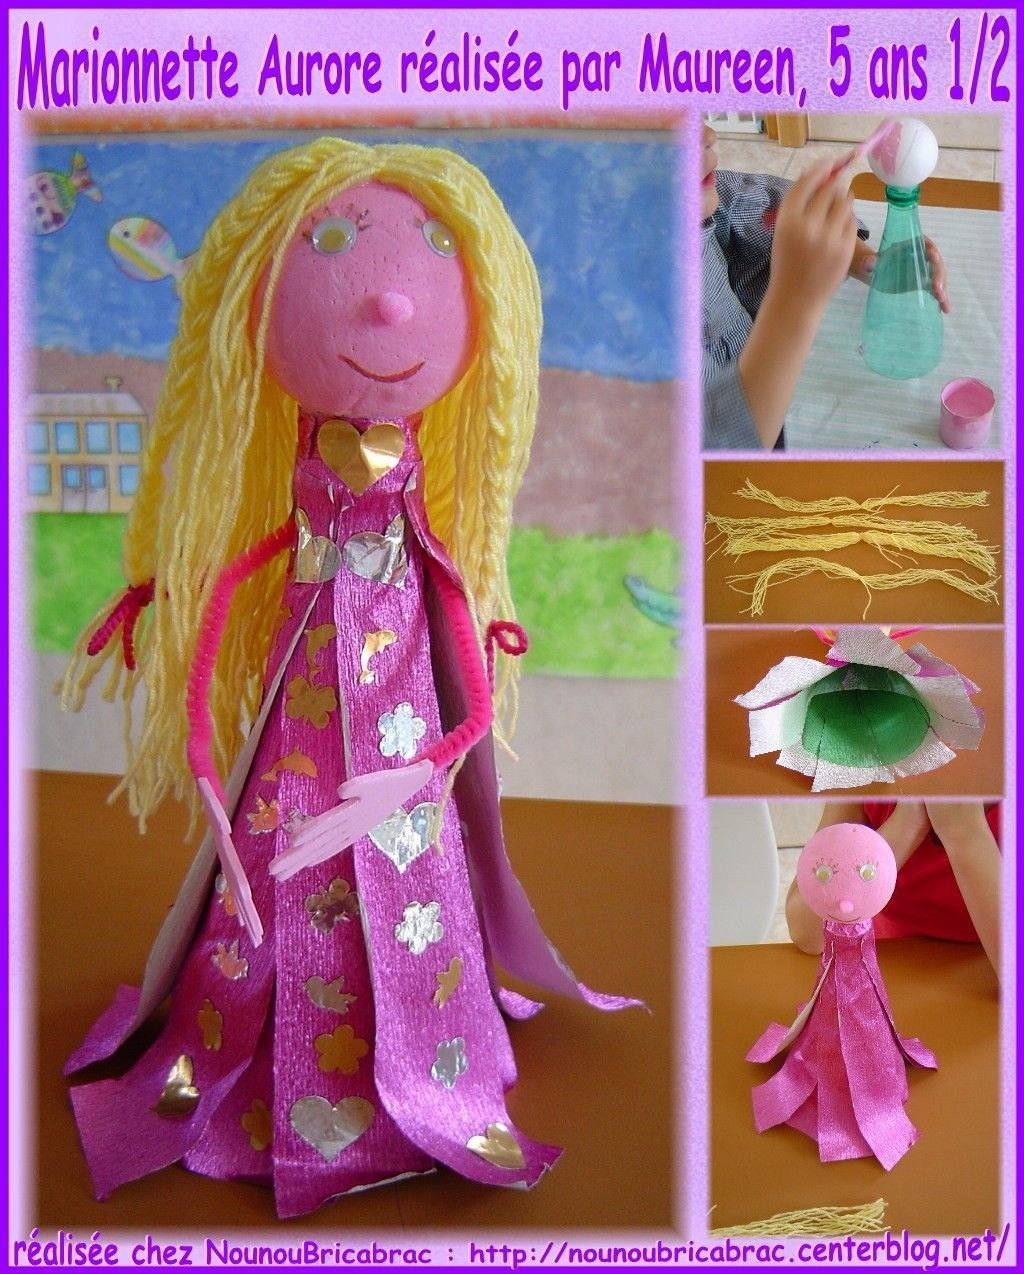 Marionnette *Aurore* ralise par Maureen, 5 ans 1/2